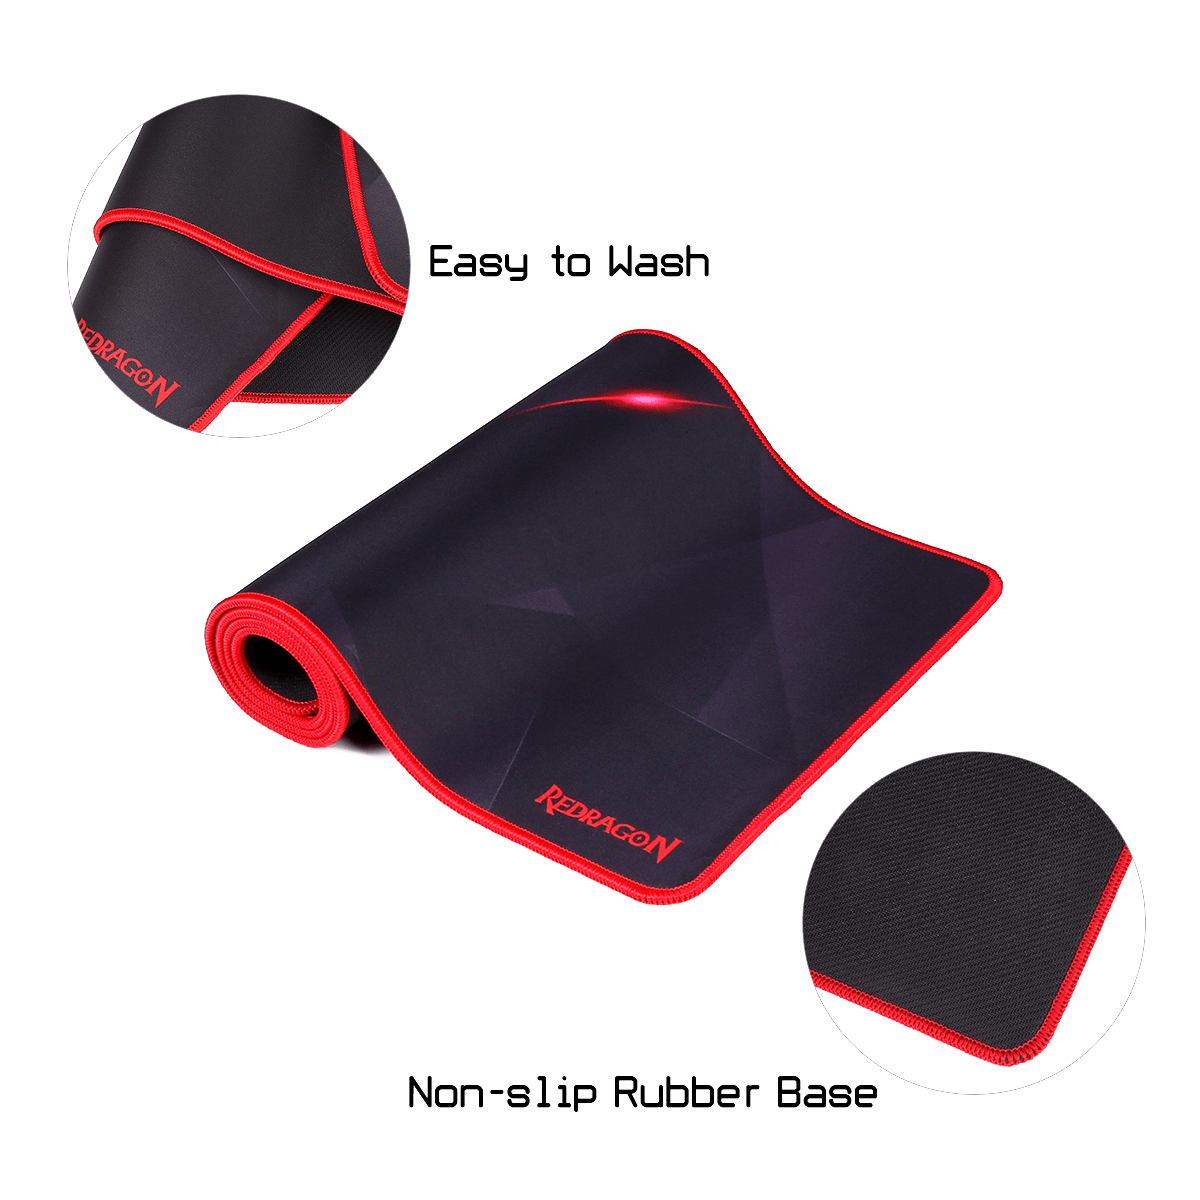 redragon mouse pad